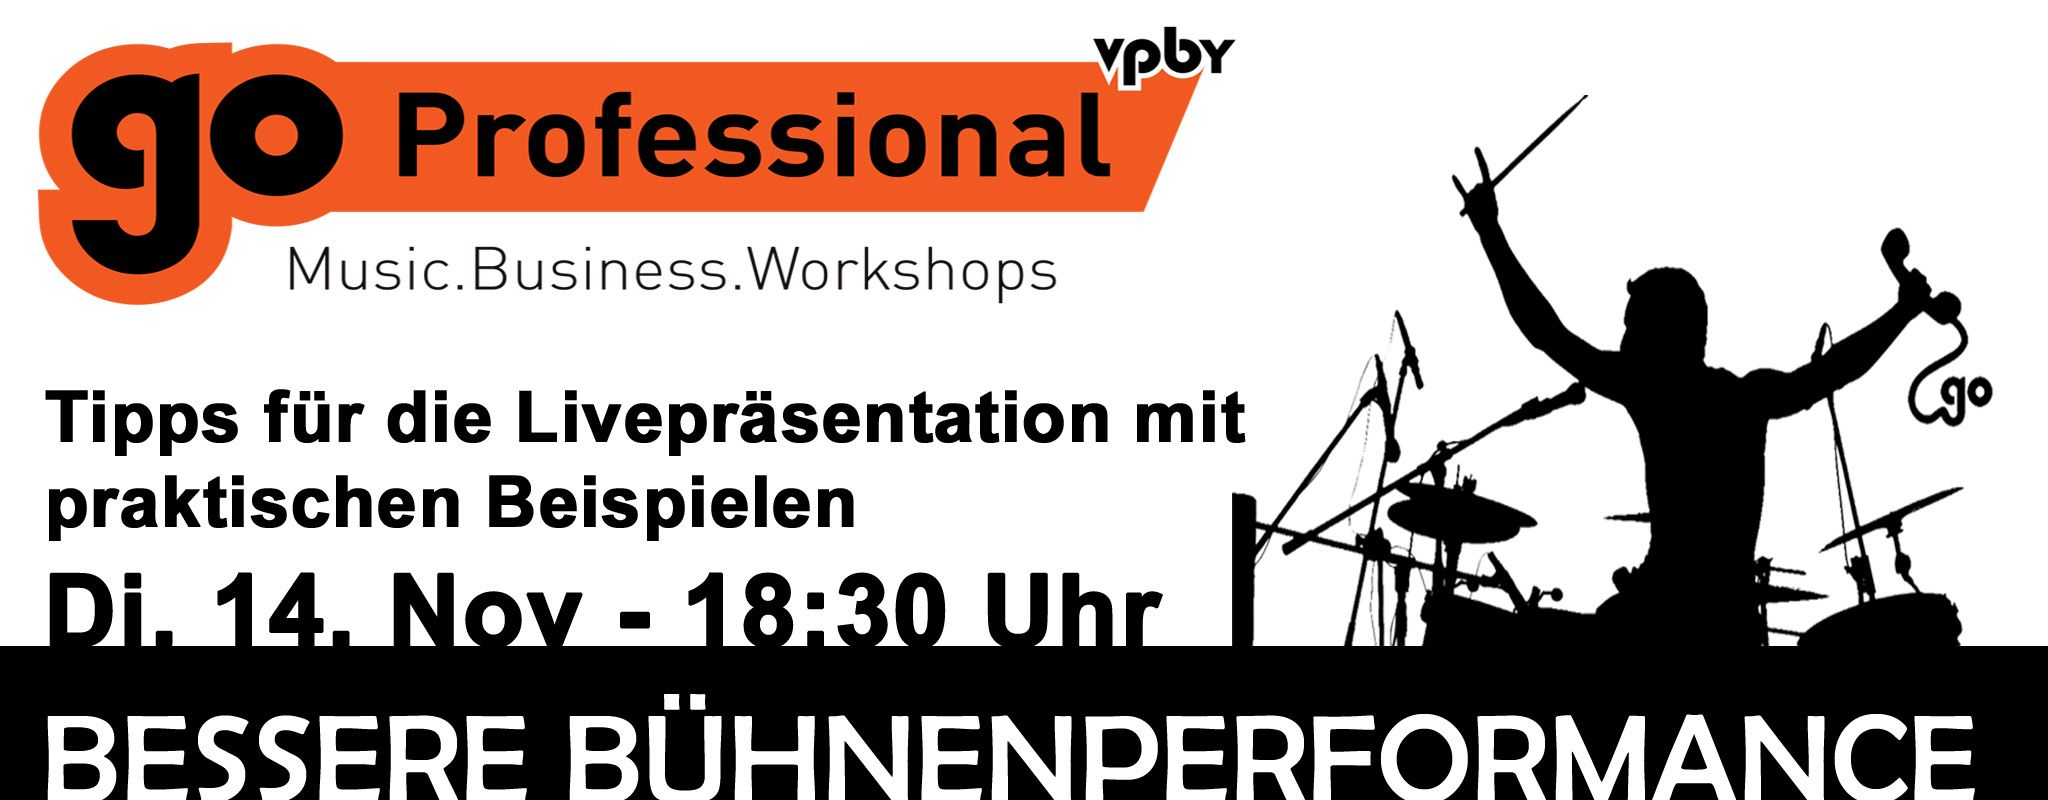 Go Professional Workshop: Bessere Buehnenperformance